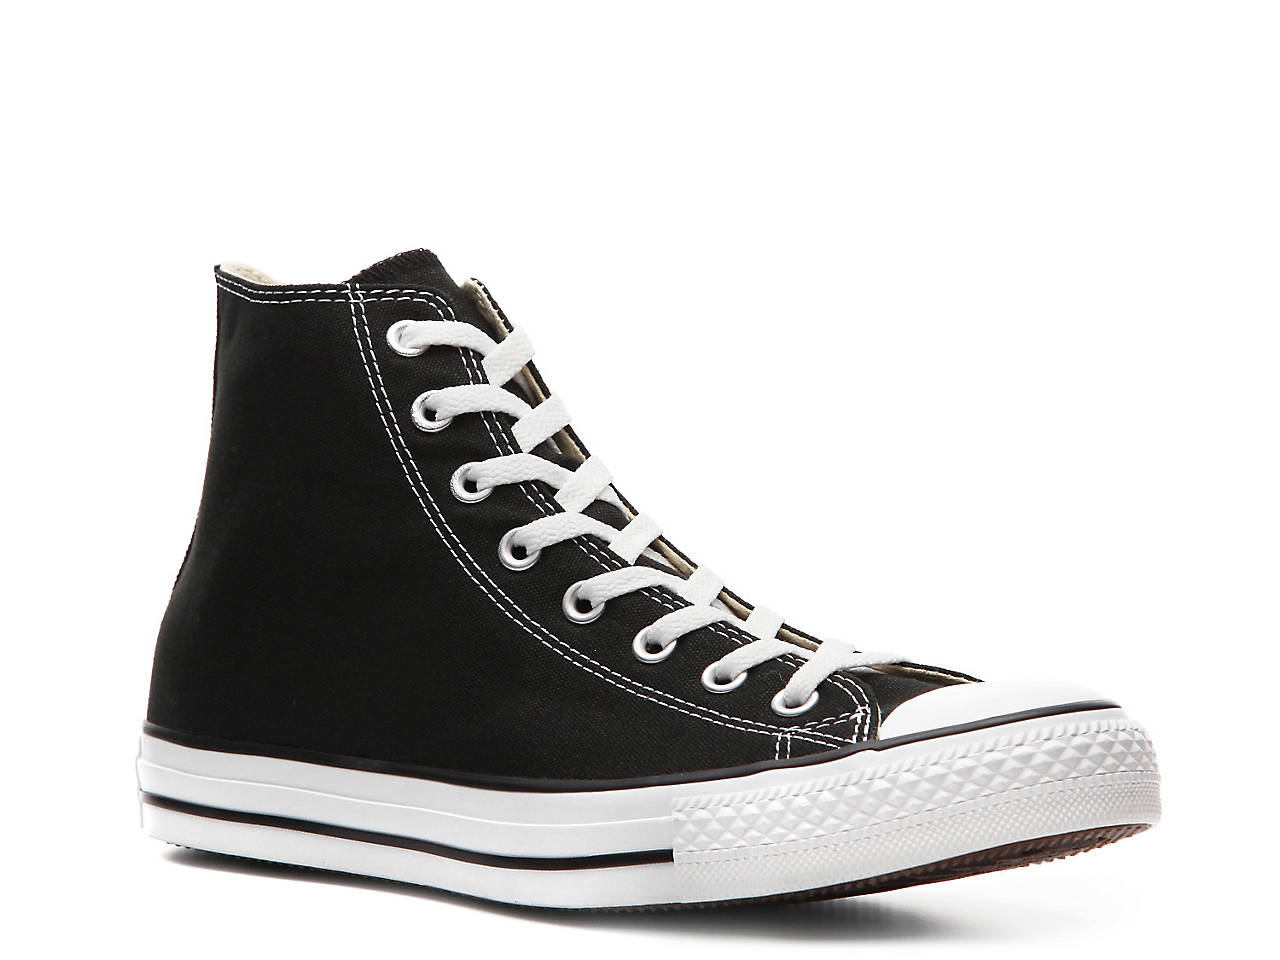 Converse Chuck Taylor All Star High-Top Sneaker - Men s Men s Shoes ... 578cb9345cc6